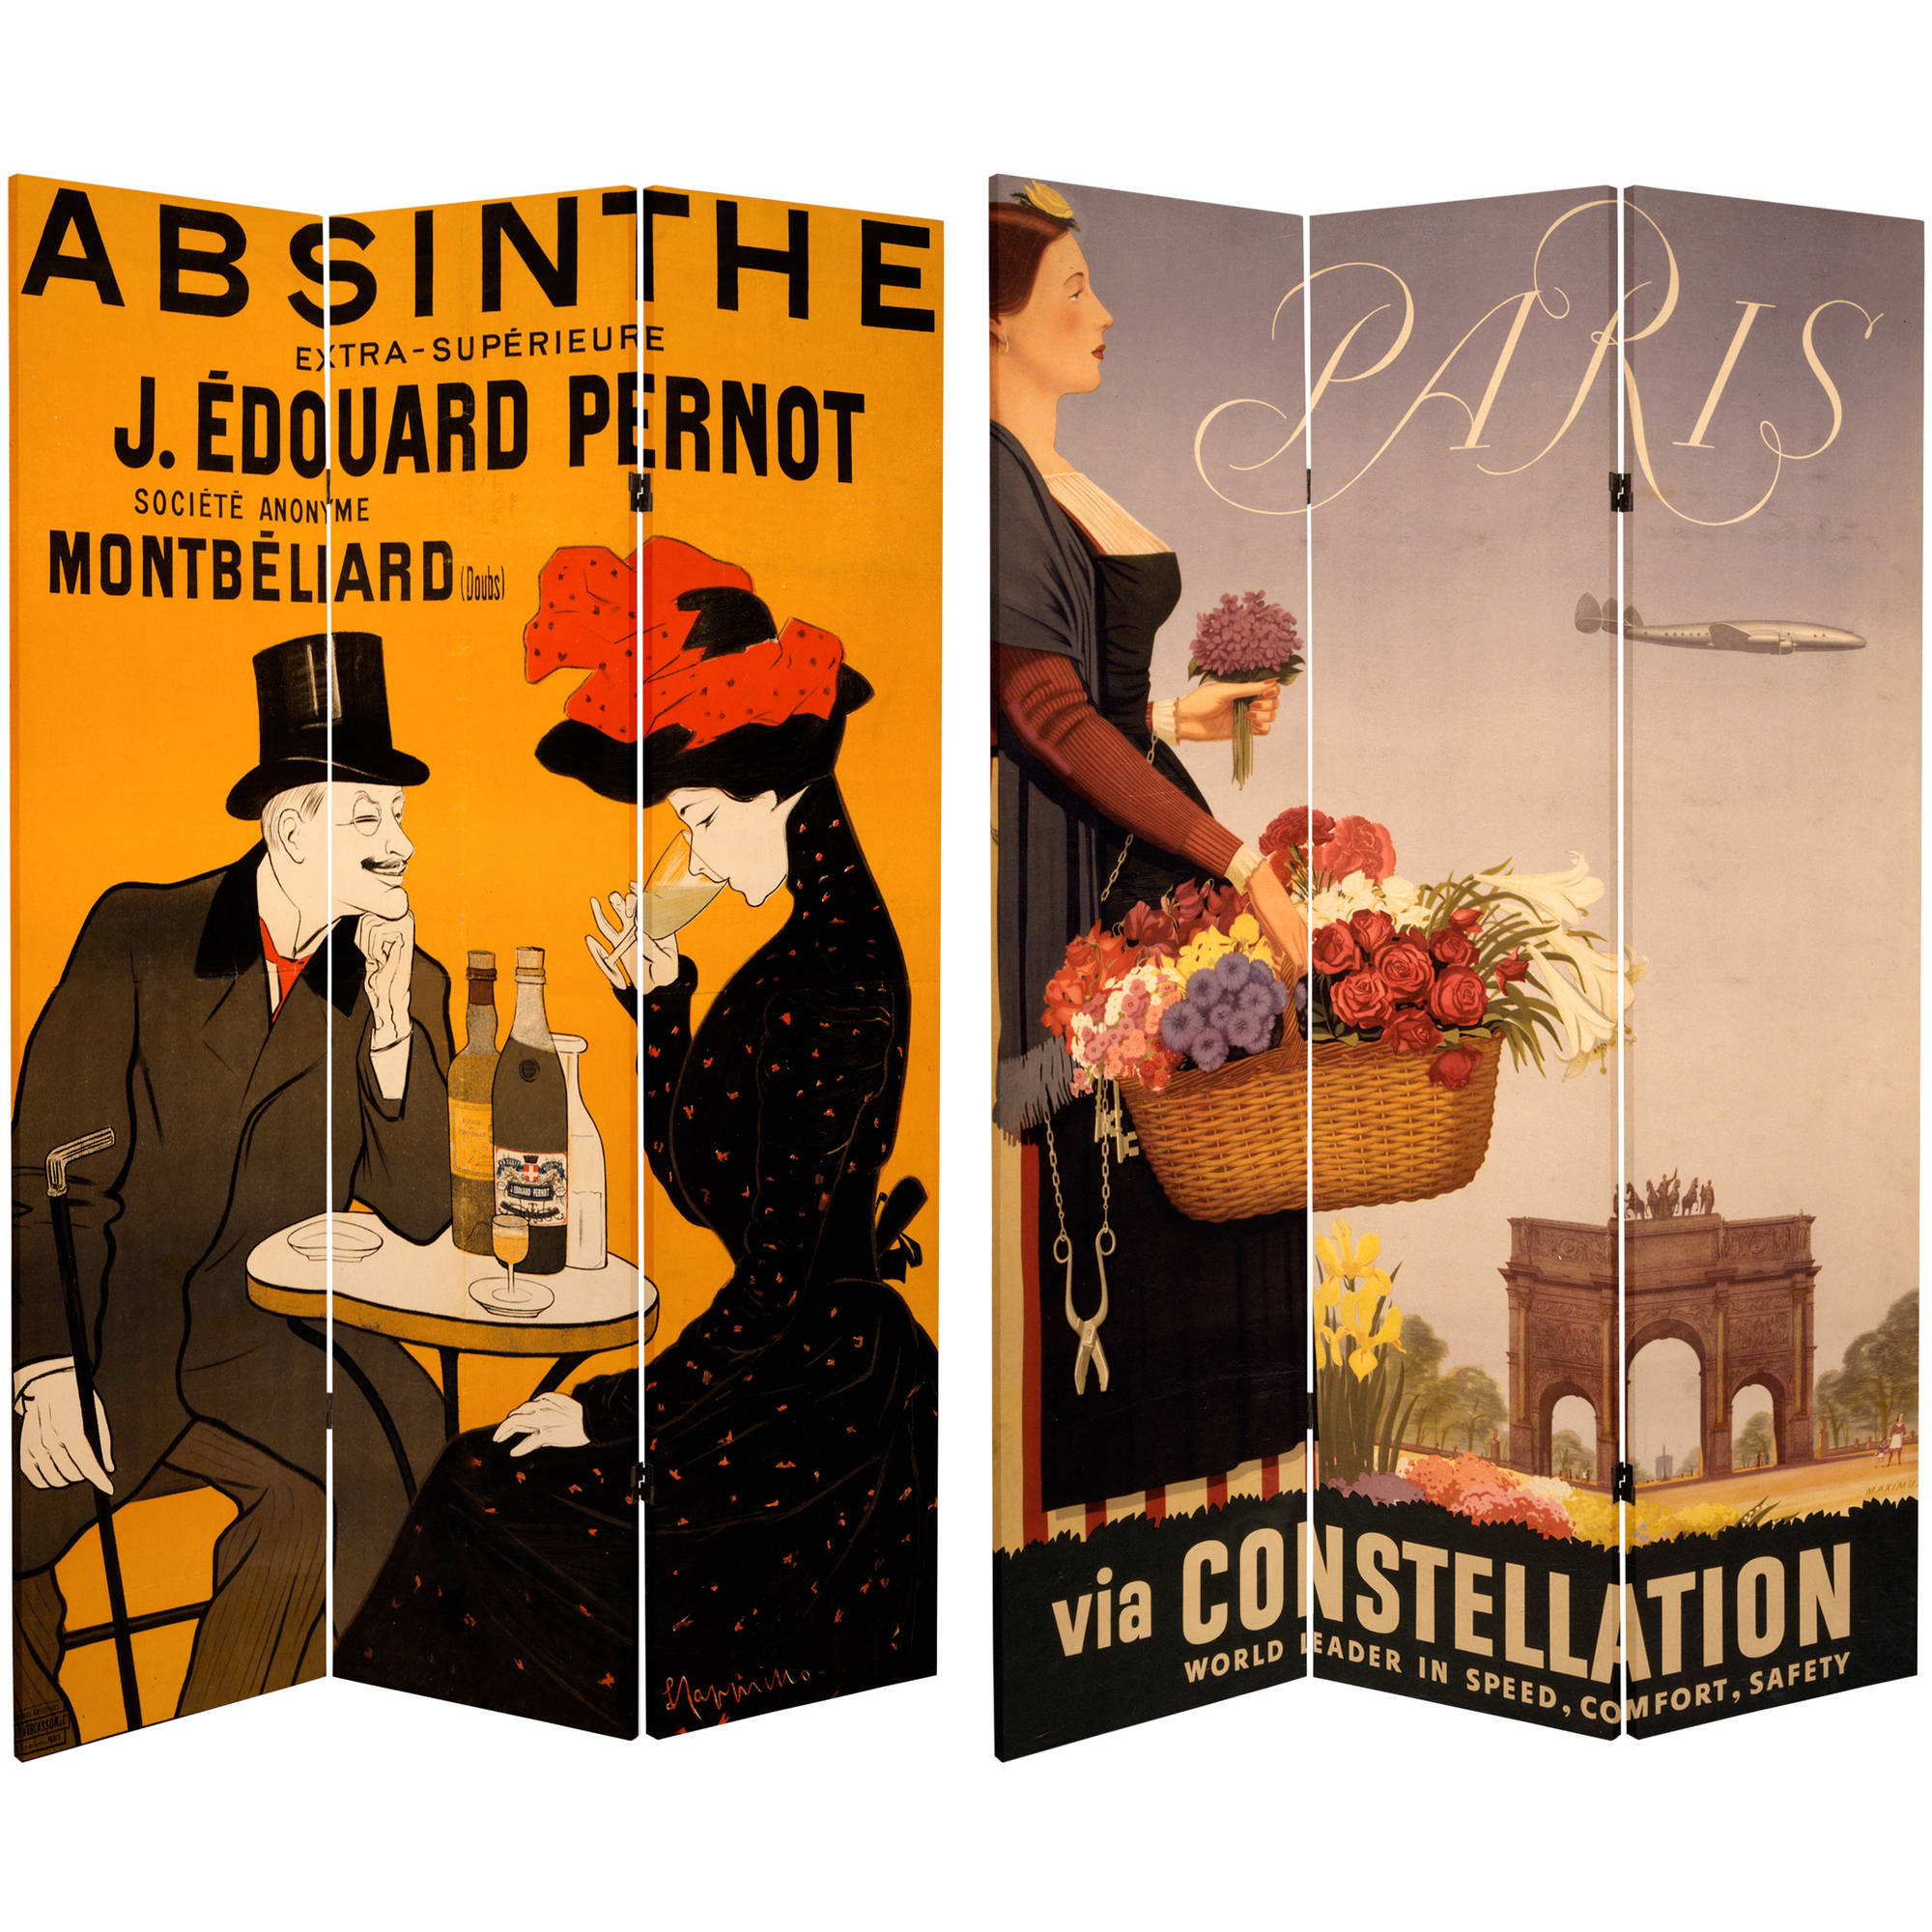 6' Tall Double Sided Absinthe Canvas Room Divider